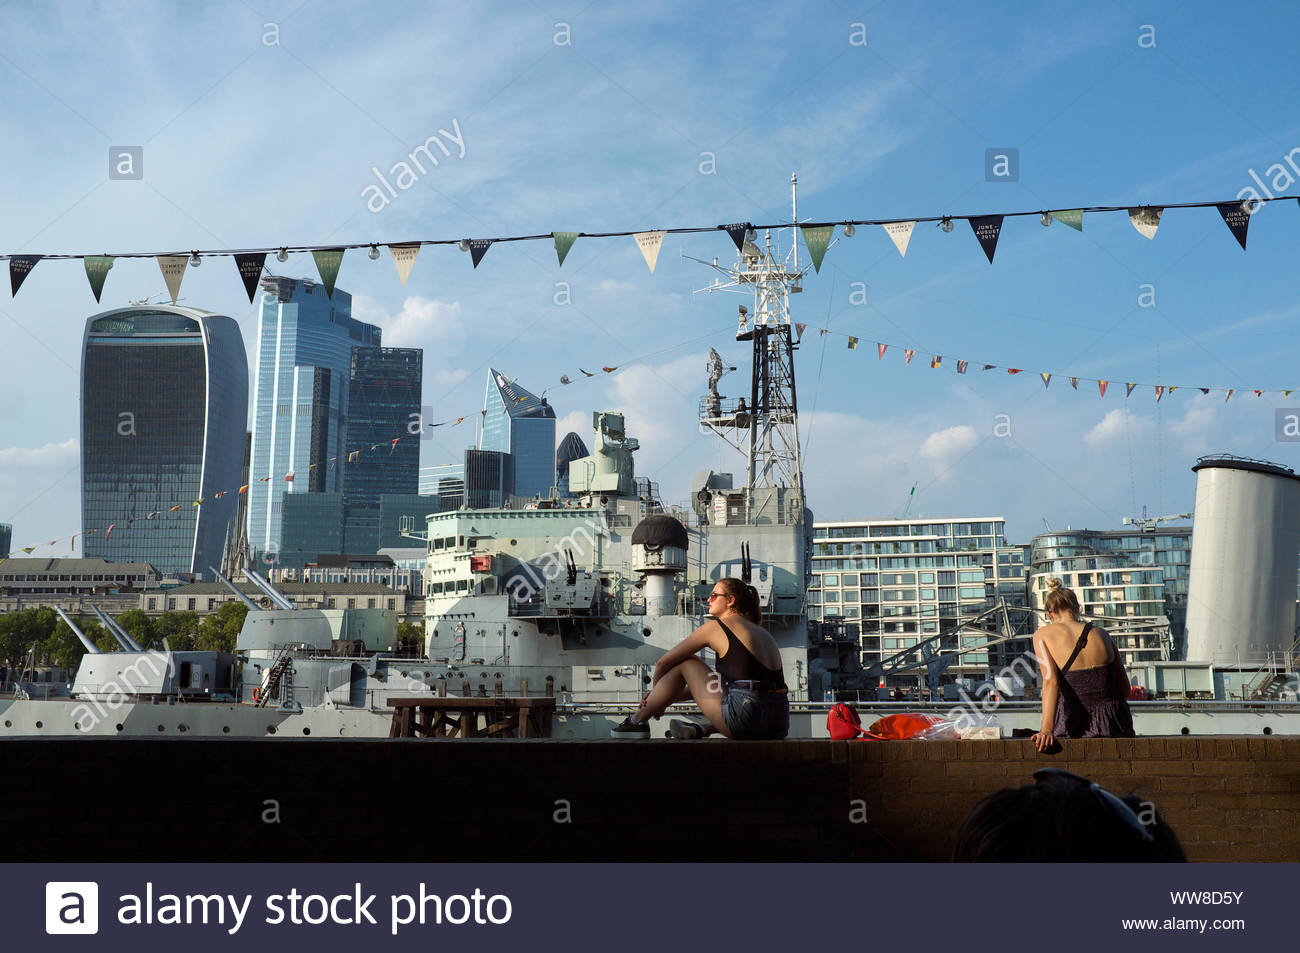 The WWII navy ship HMS Belfast, almost hidden against the backdrop across the River Thames. South Bank, London, UK. Stock Photo